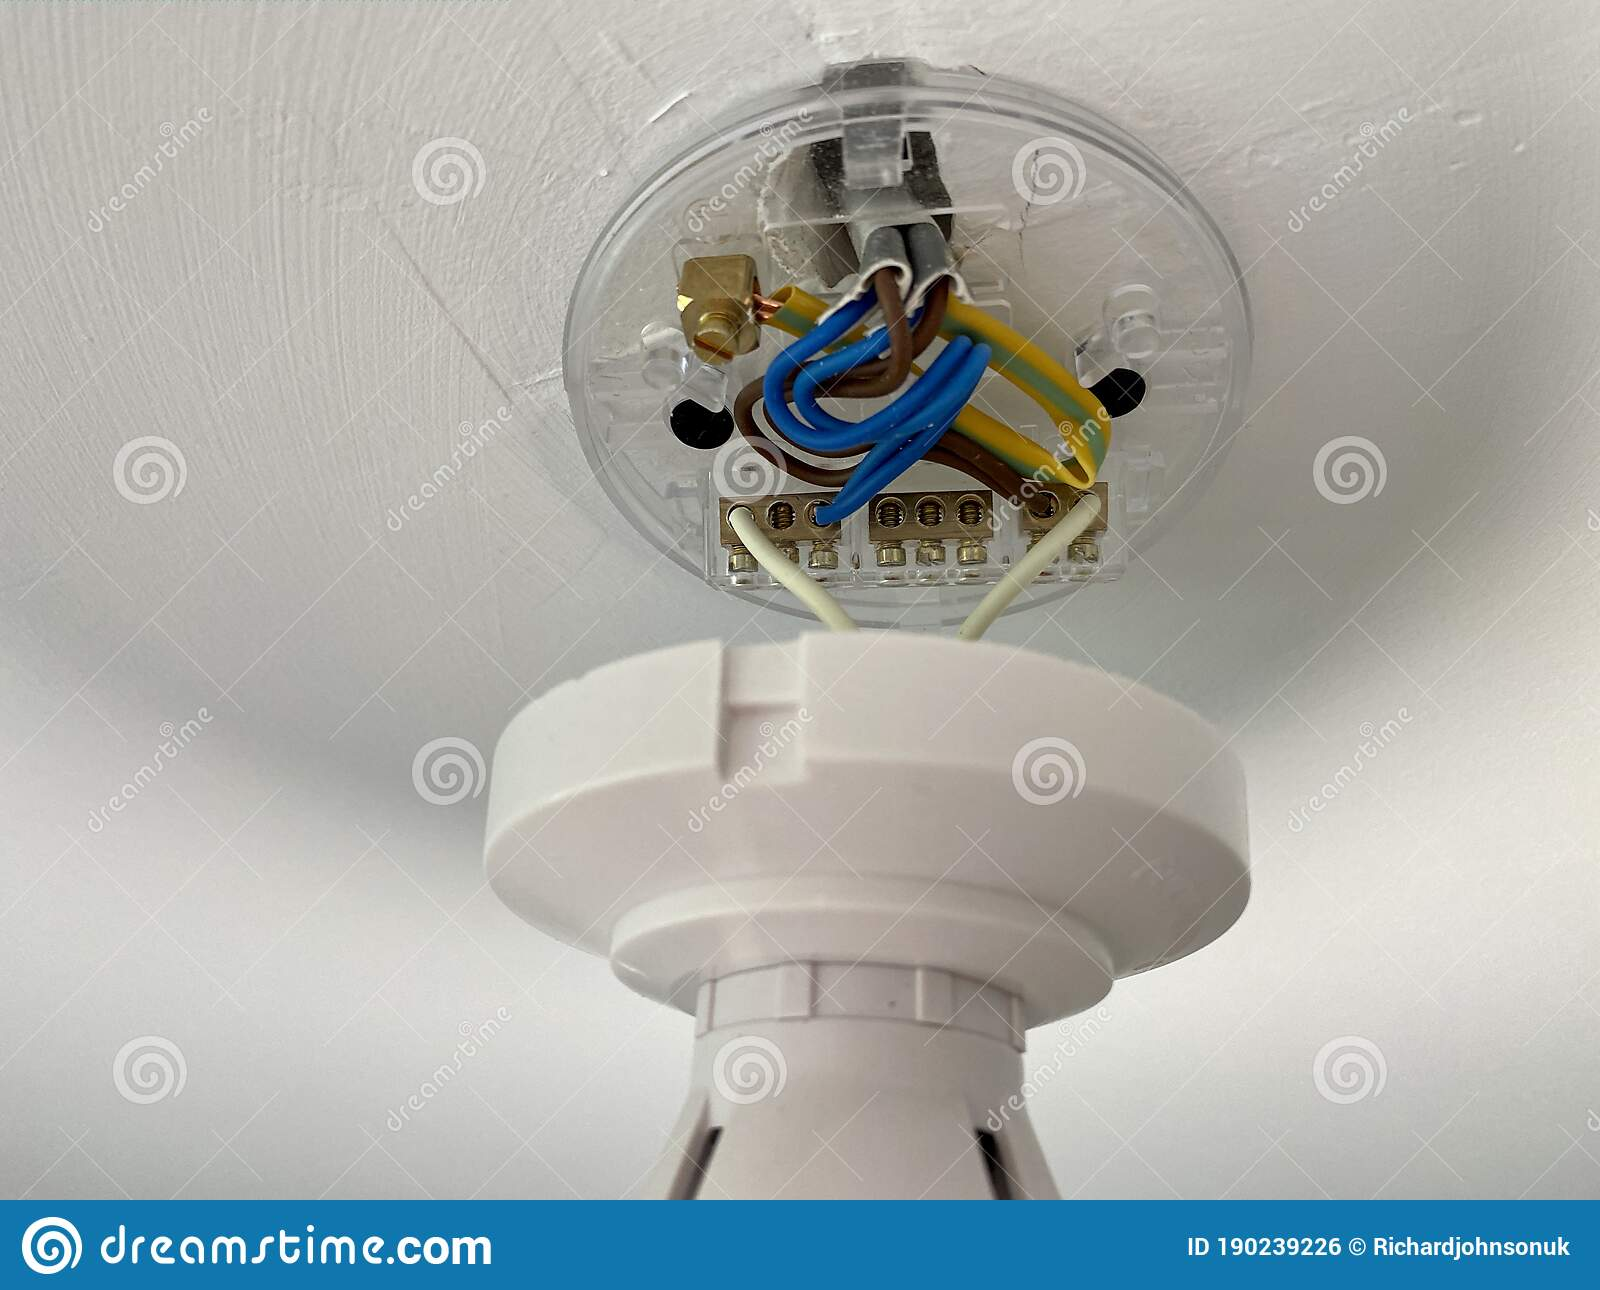 Ceiling Light Wiring Terminal Block And Blue Brown Cable Stock Photo Image Of Bulb Repair 190239226